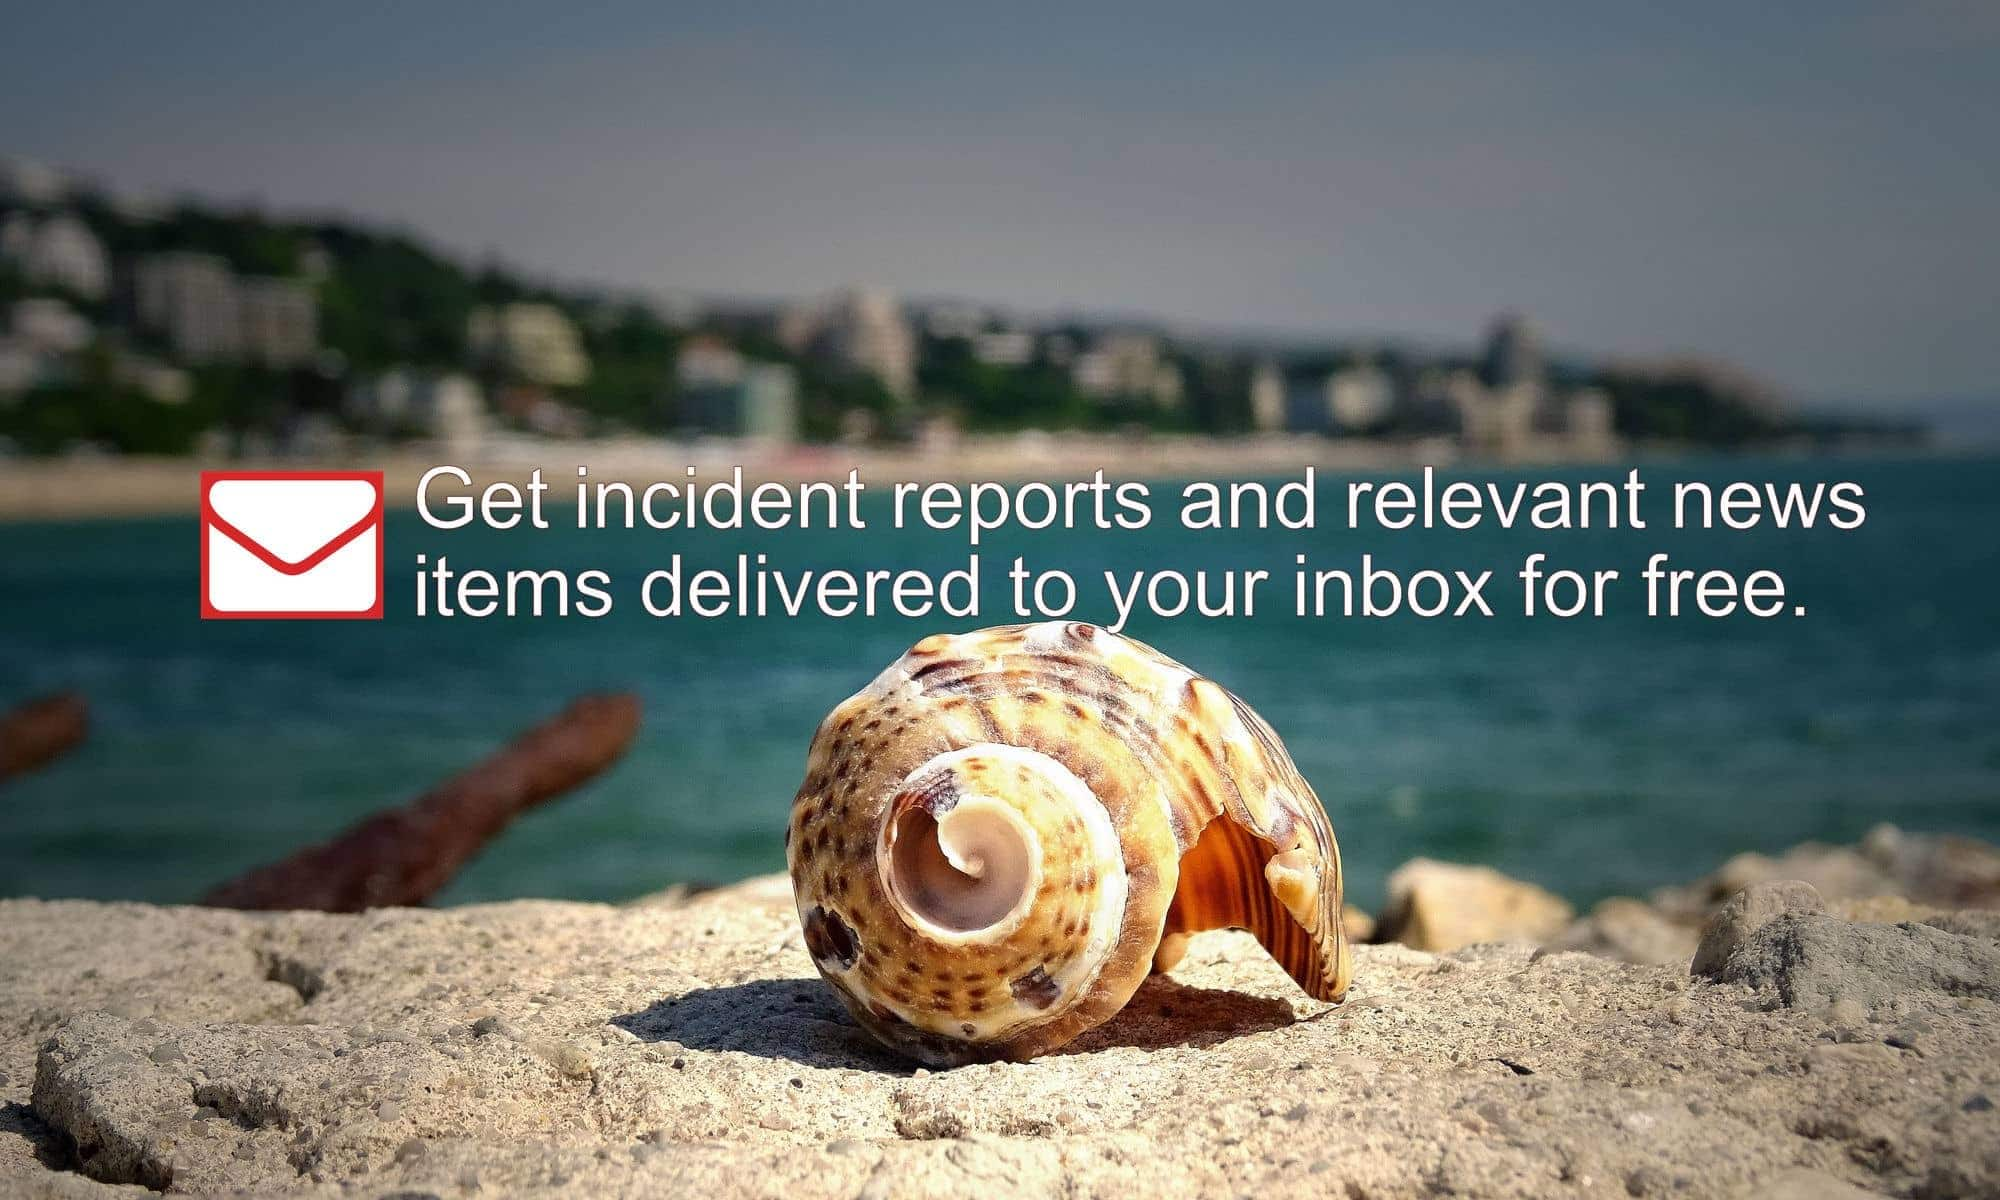 Get incident reports and relevant news items delivered to your inbox for free